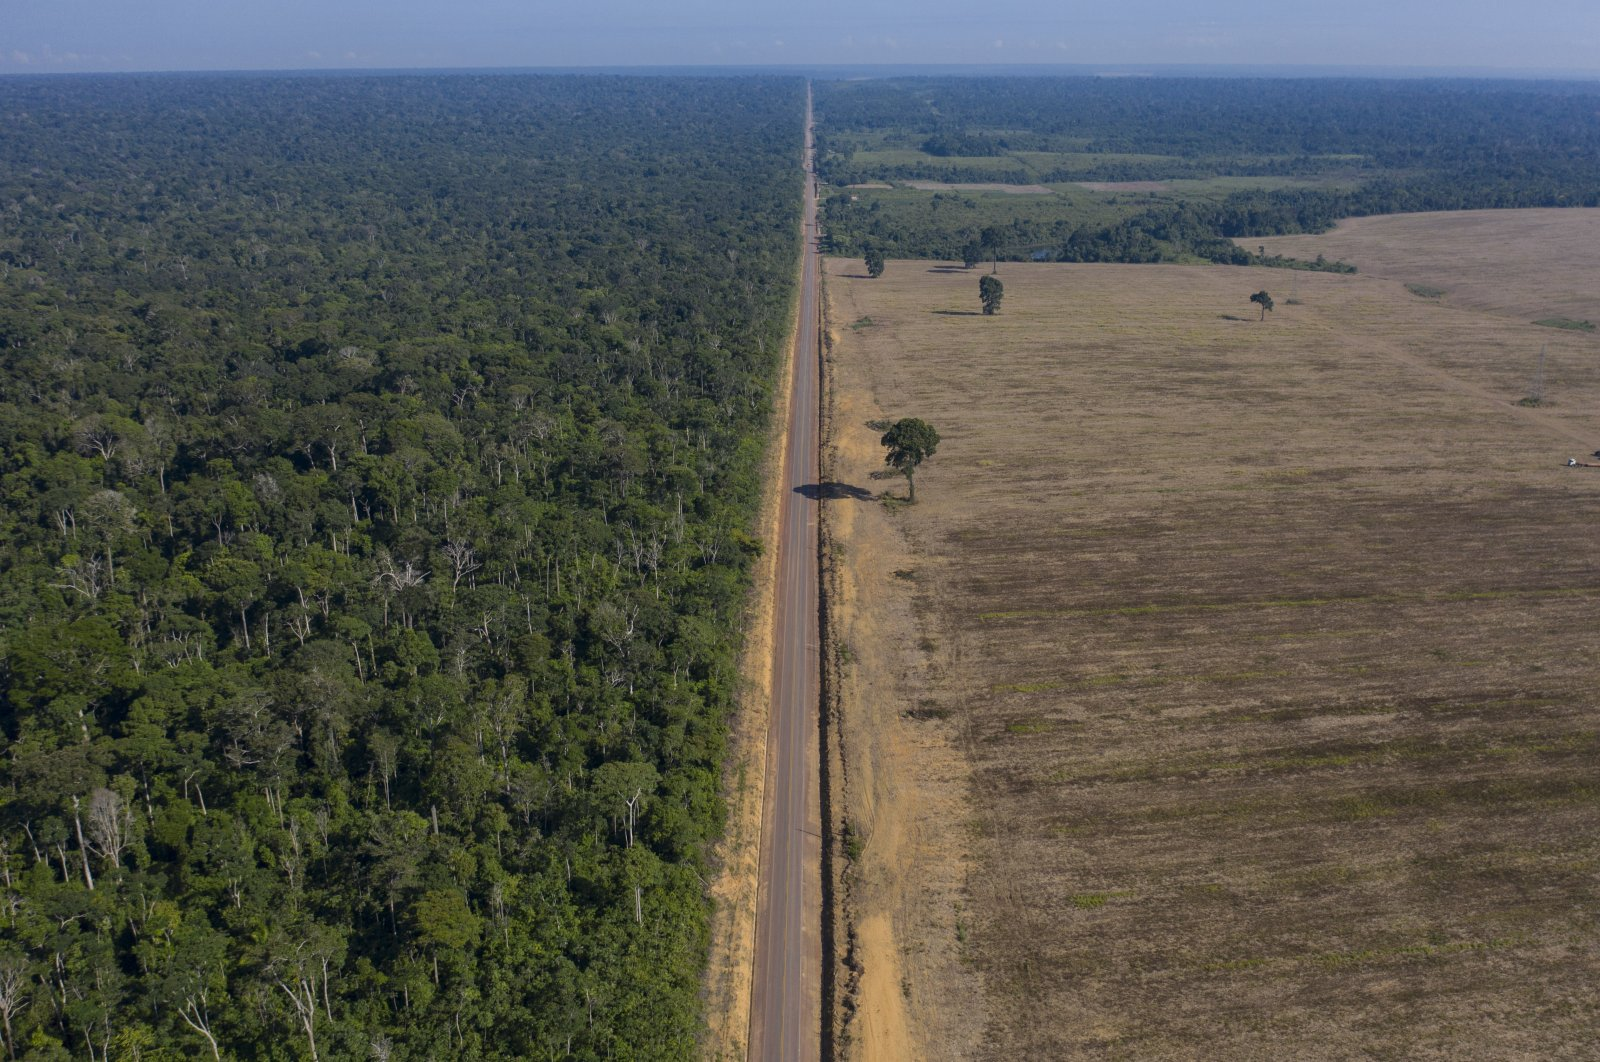 Highway BR-163 stretches between the Tapajos National Forest (L) and a soy field in Belterra, Brazil, Nov. 25, 2019. (AP Photo)